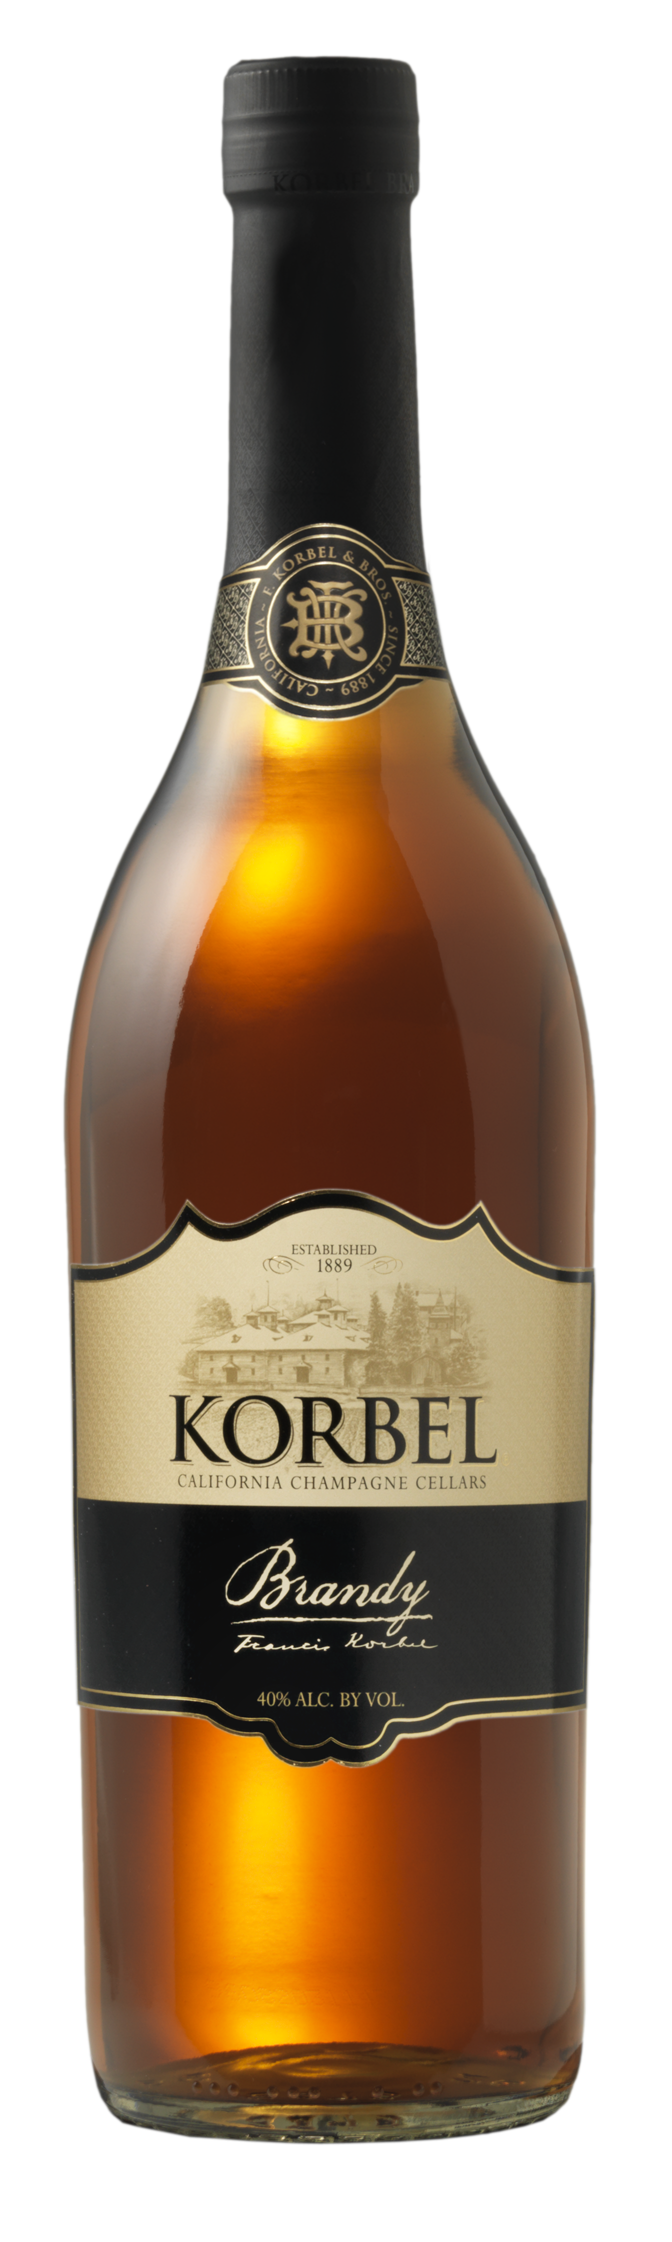 Drinking clipart brandy bottle. Png image